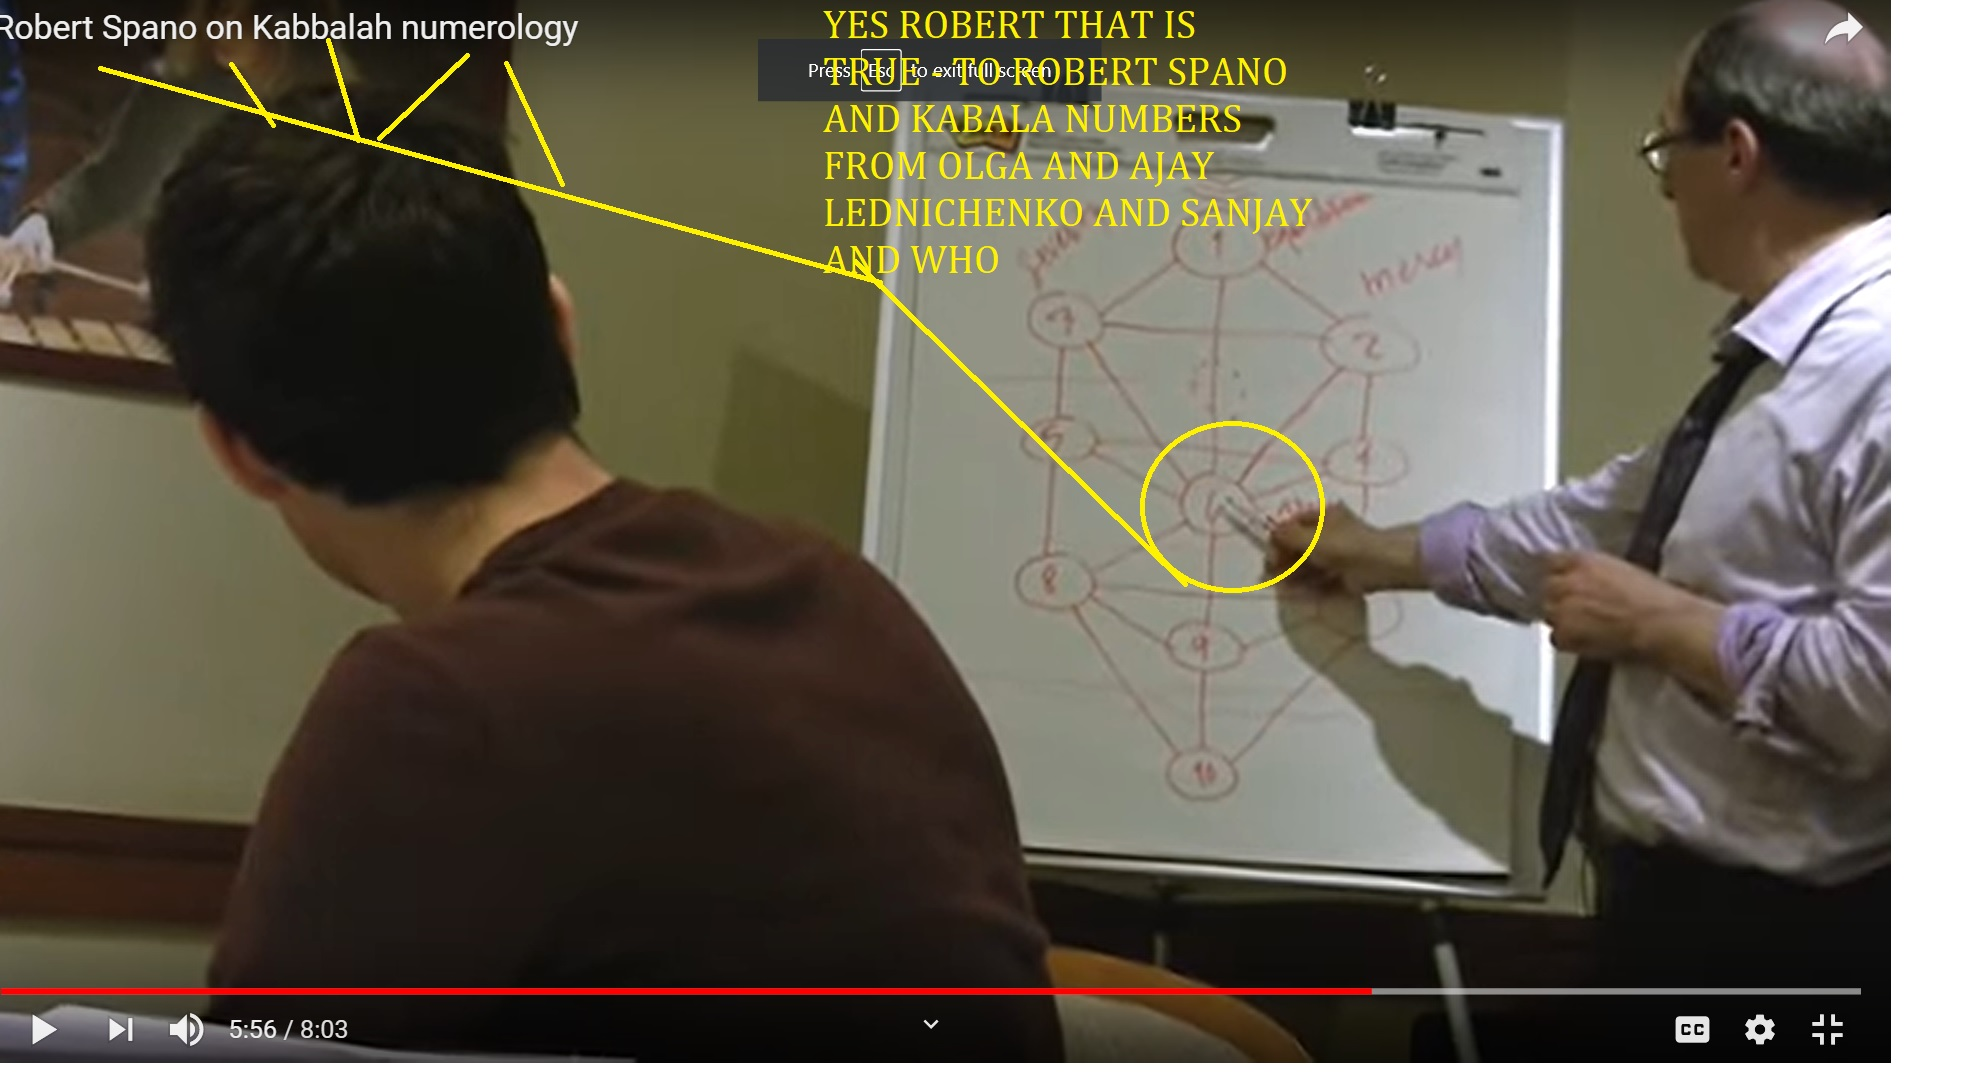 YES ROBERT THAT IS TRUE - TO ROBERT SPANO AND KABALA NUMBERS FROM OLGA AND AJAY LEDNICHENKO AND SANJAY AND WHO